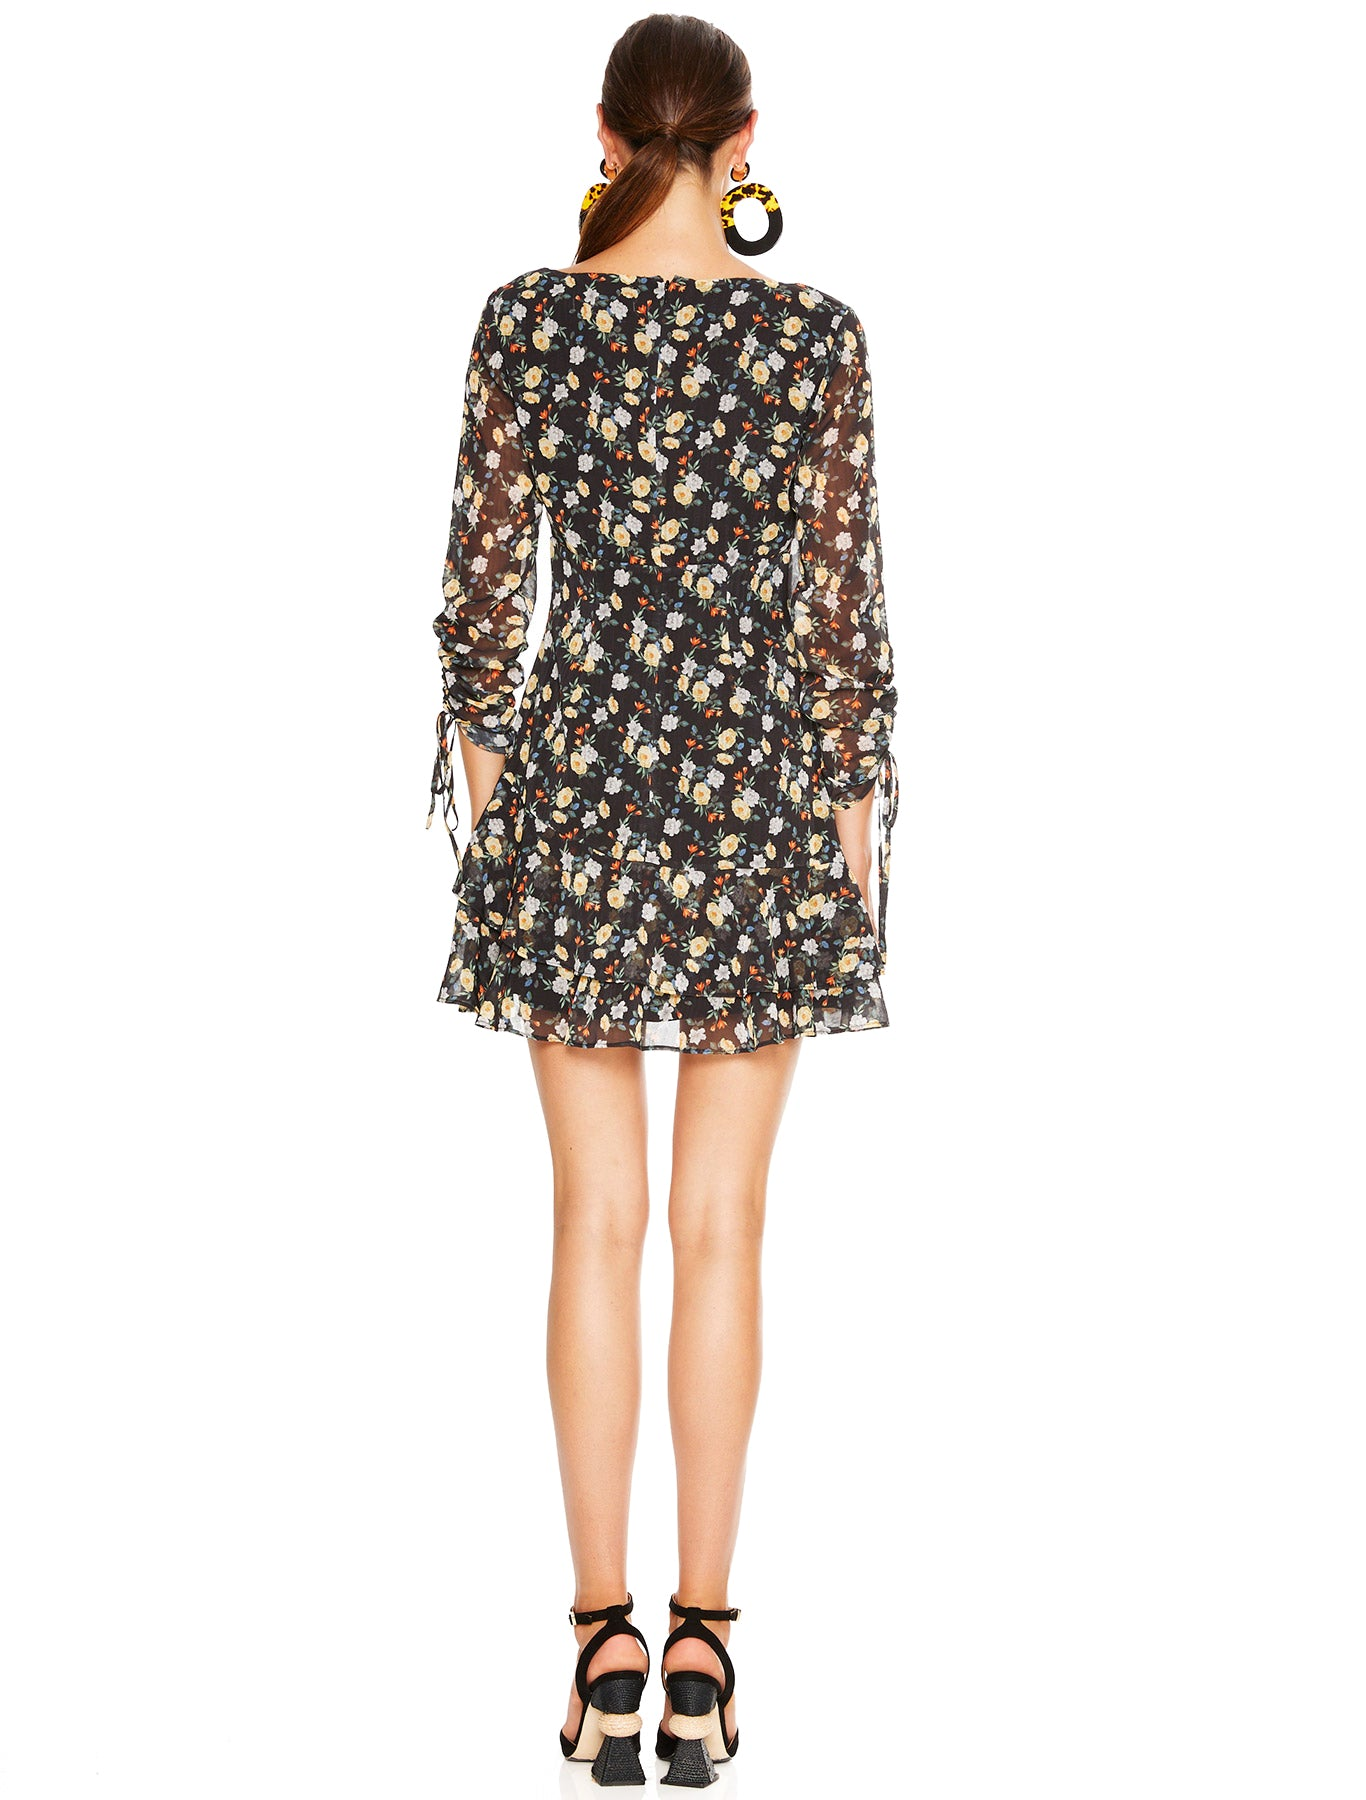 TAHITI NIGHTS L/S MINI DRESS